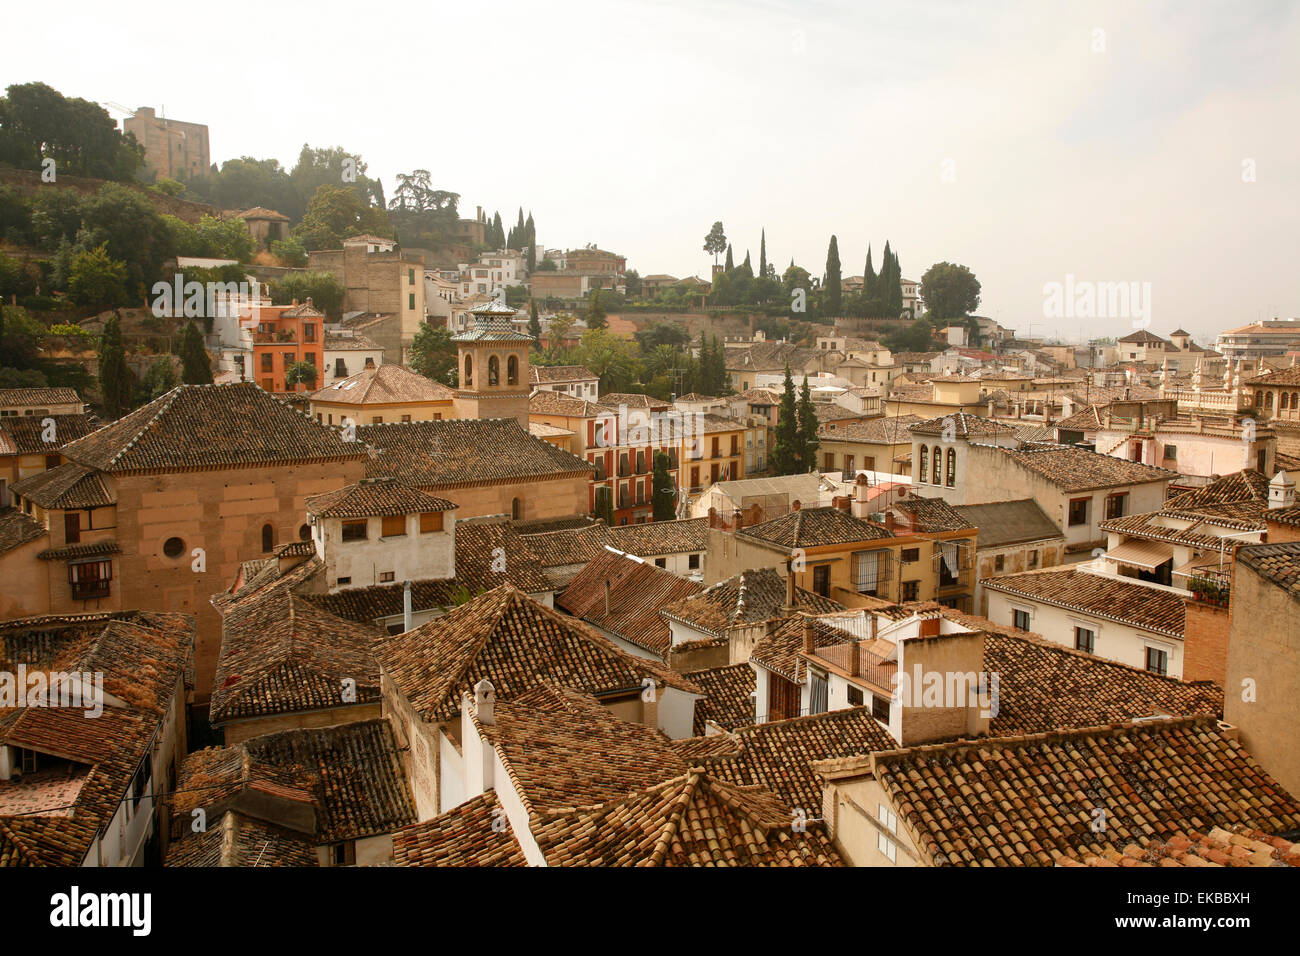 View over the rooftops in the Albayzin, Granada, Andalucia, Spain, Europe - Stock Image